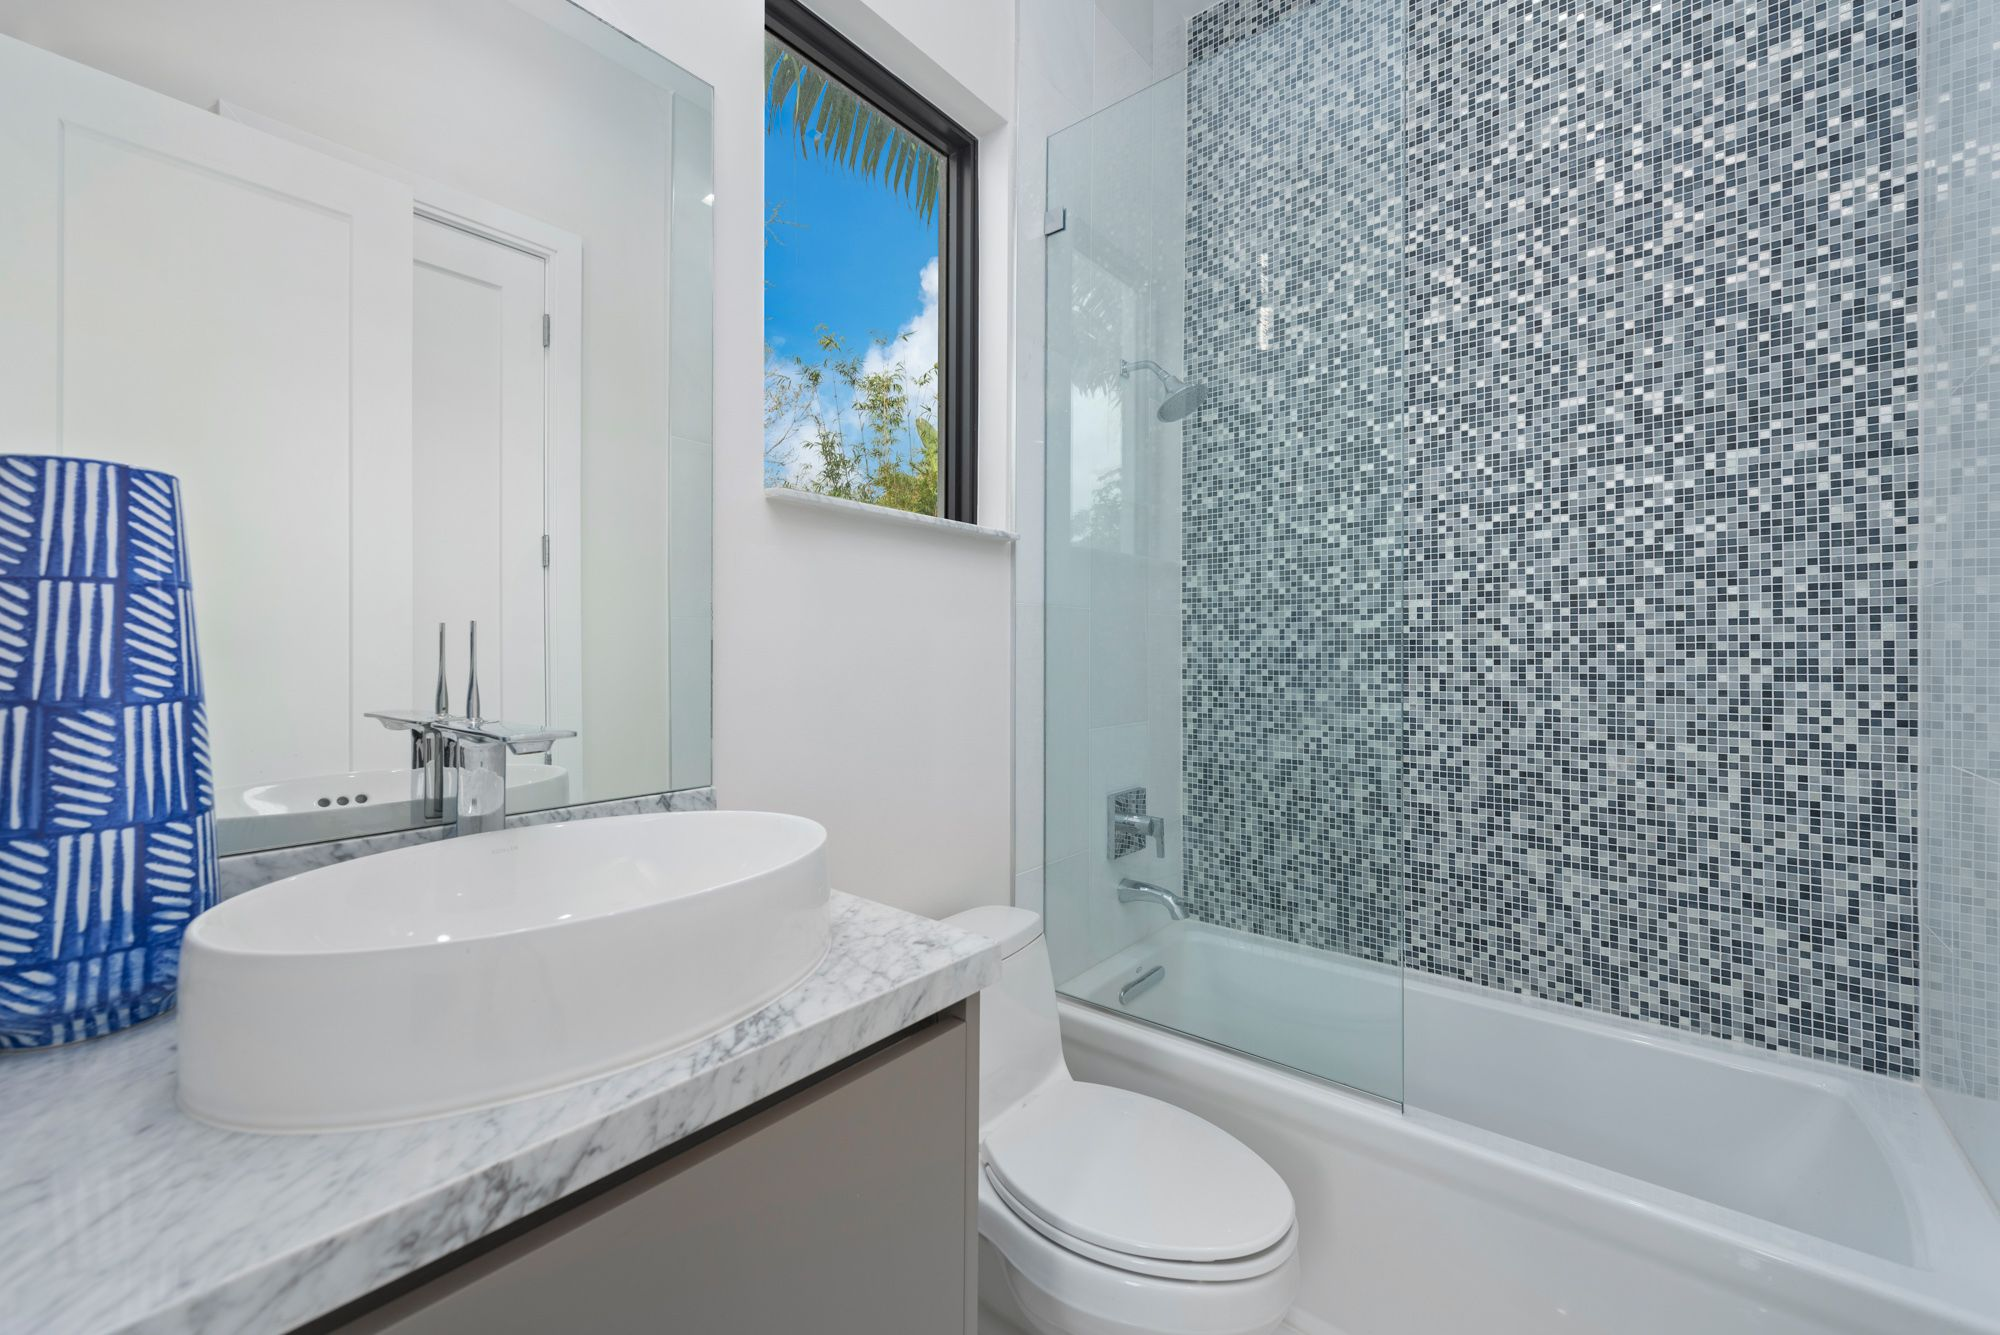 Bathroom featured in the Capri B Three Story By CC Homes in Miami-Dade County, FL